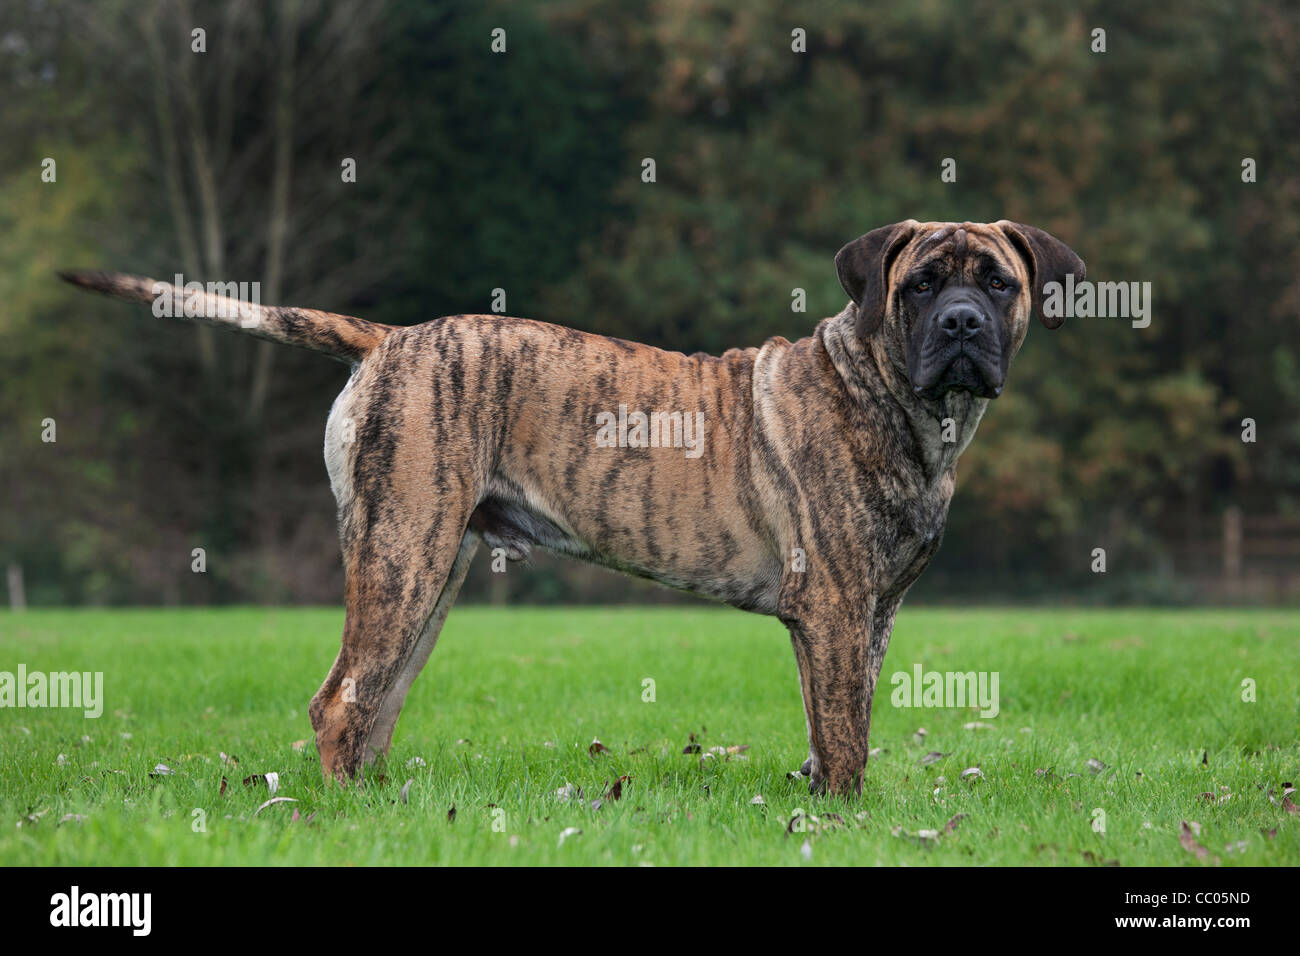 Boerboel, mastiff dog breed from South Africa Stock Photo